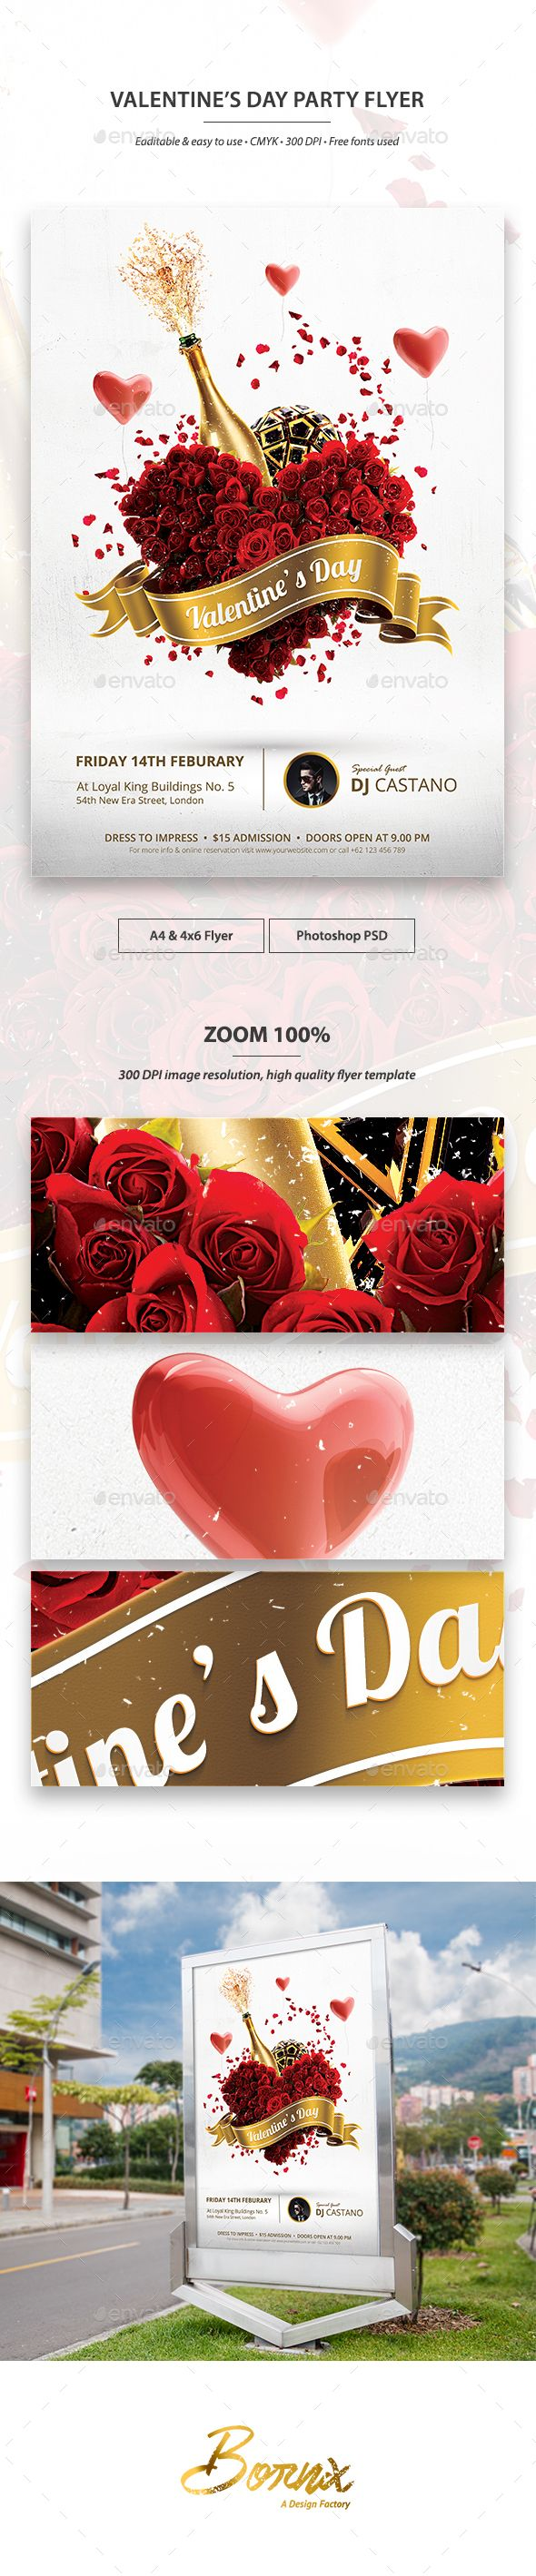 Valentines Day Party Flyer Template PSD #design Download: http://graphicriver.net/item/valentines-day-party-flyer-template/14368114?ref=ksioks